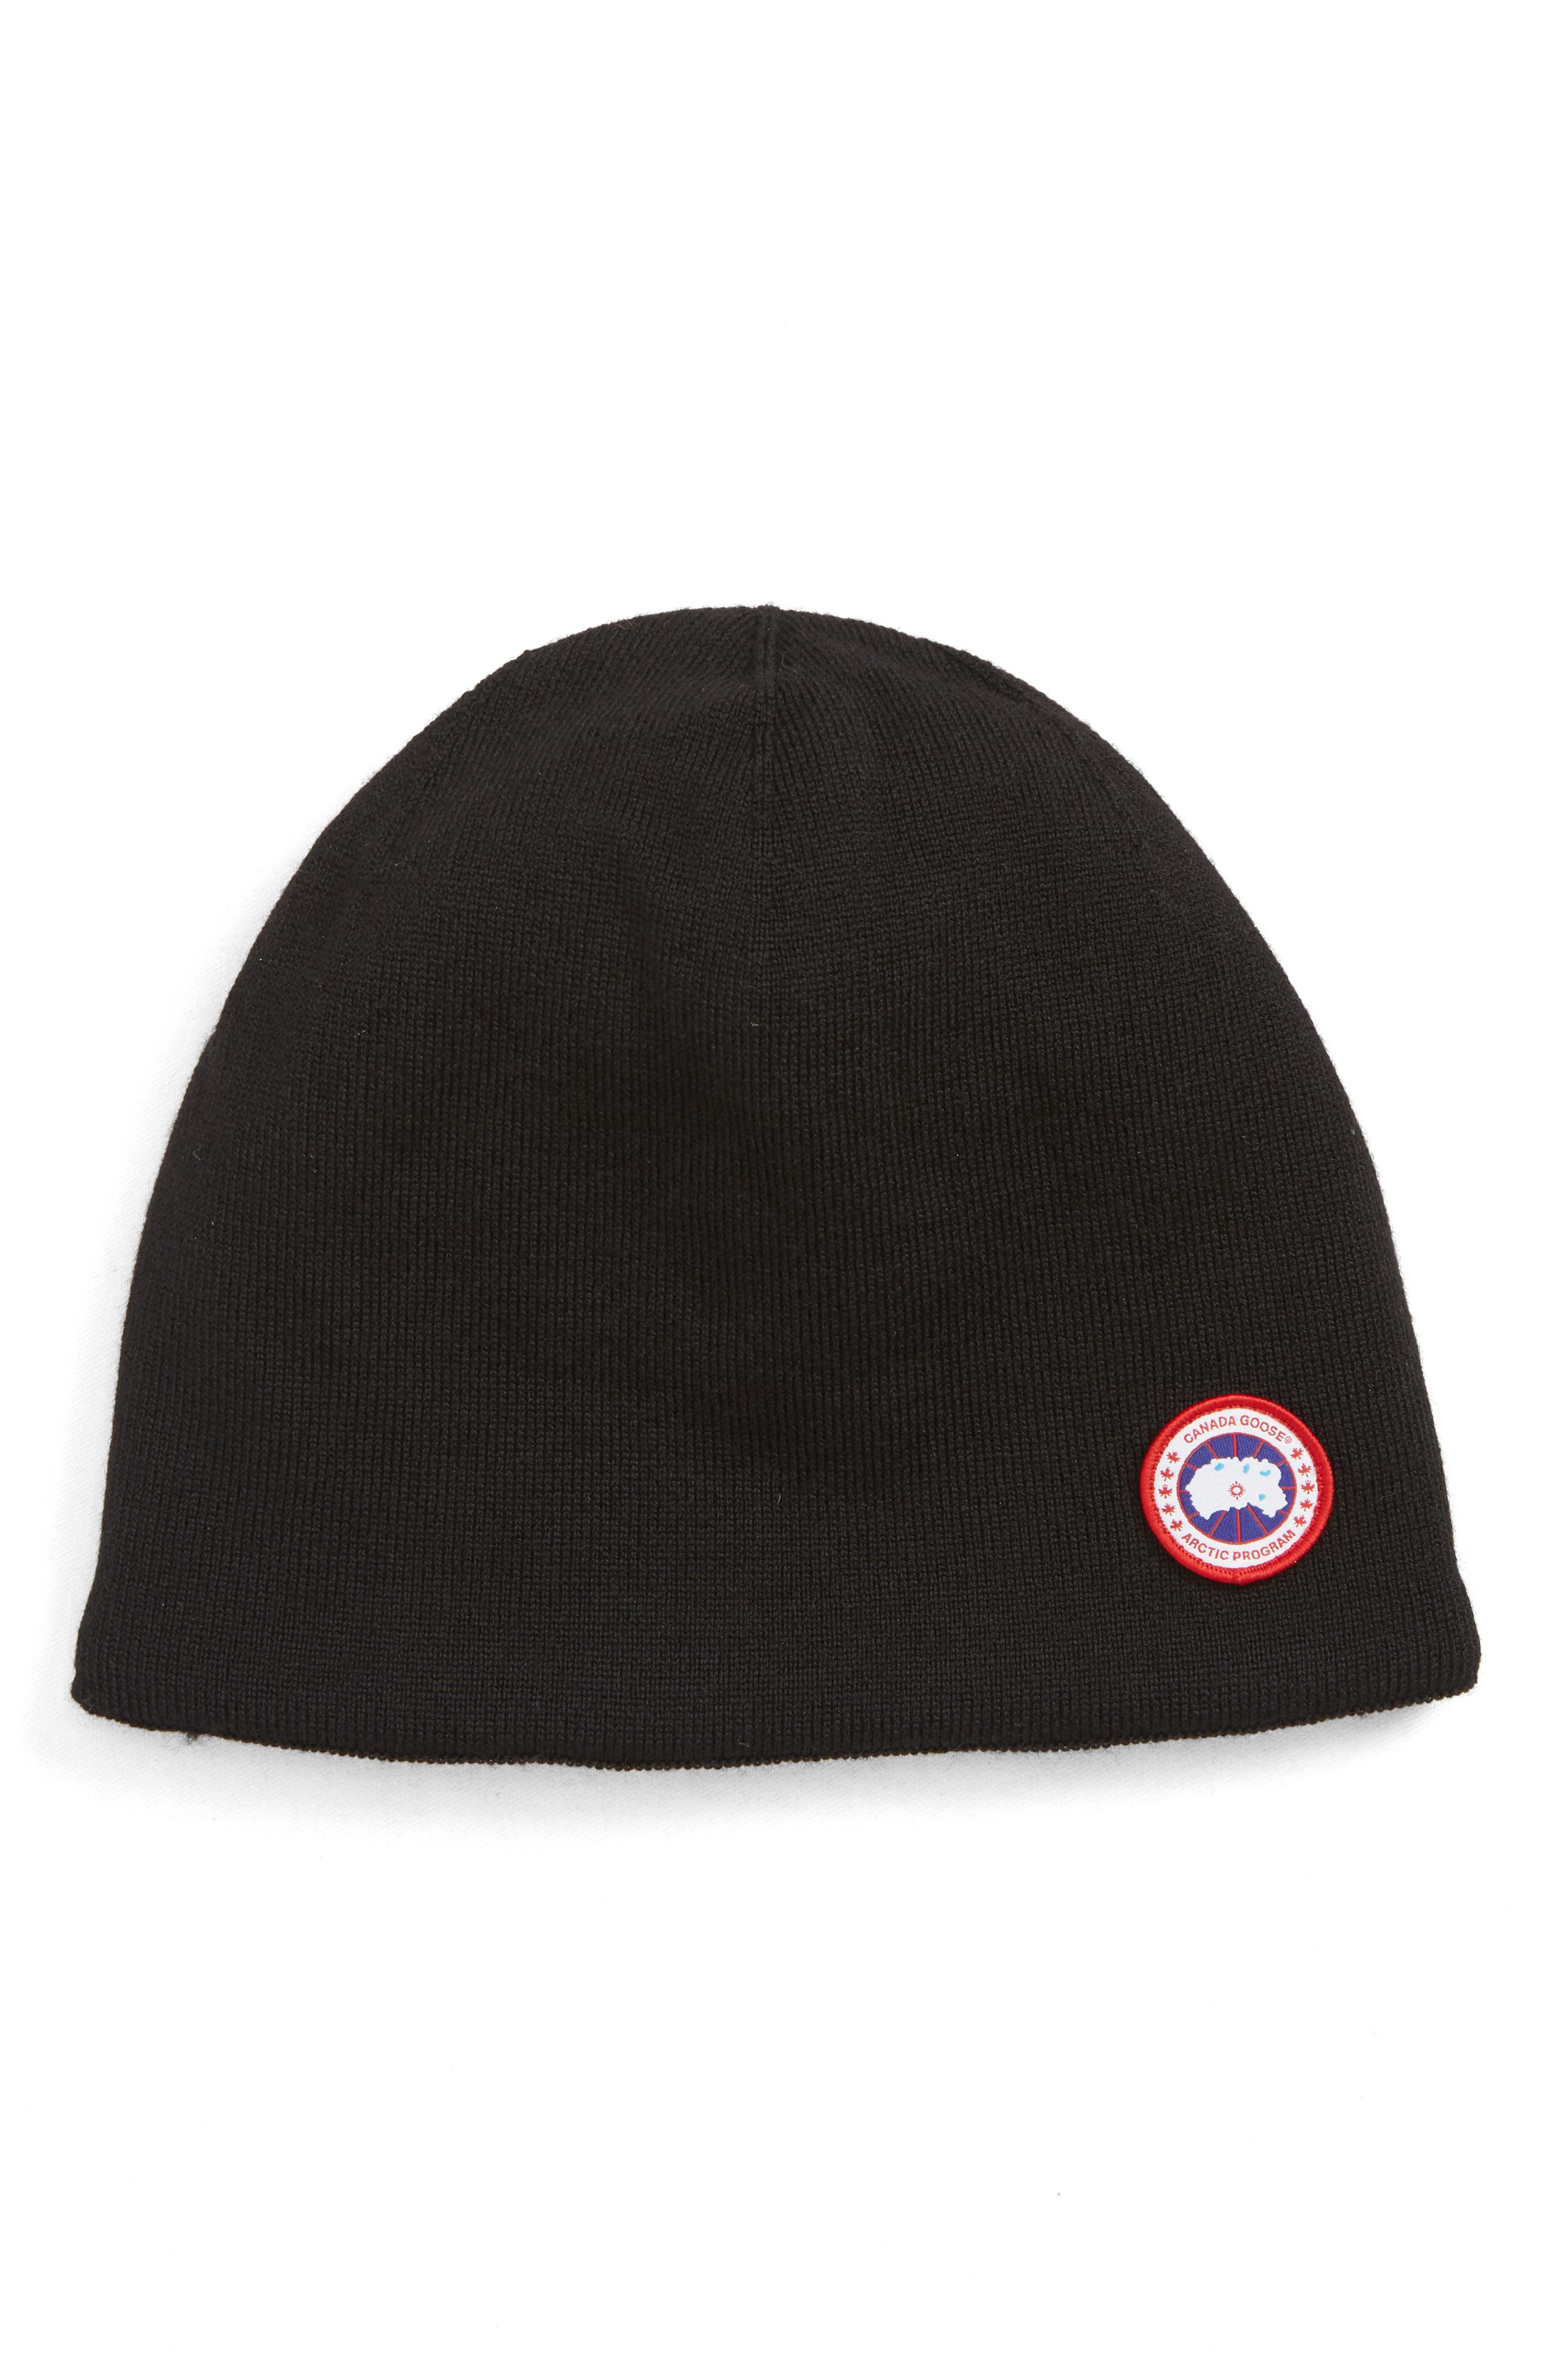 Men'S Standard Logo Toque Winter Beanie Hat in Black